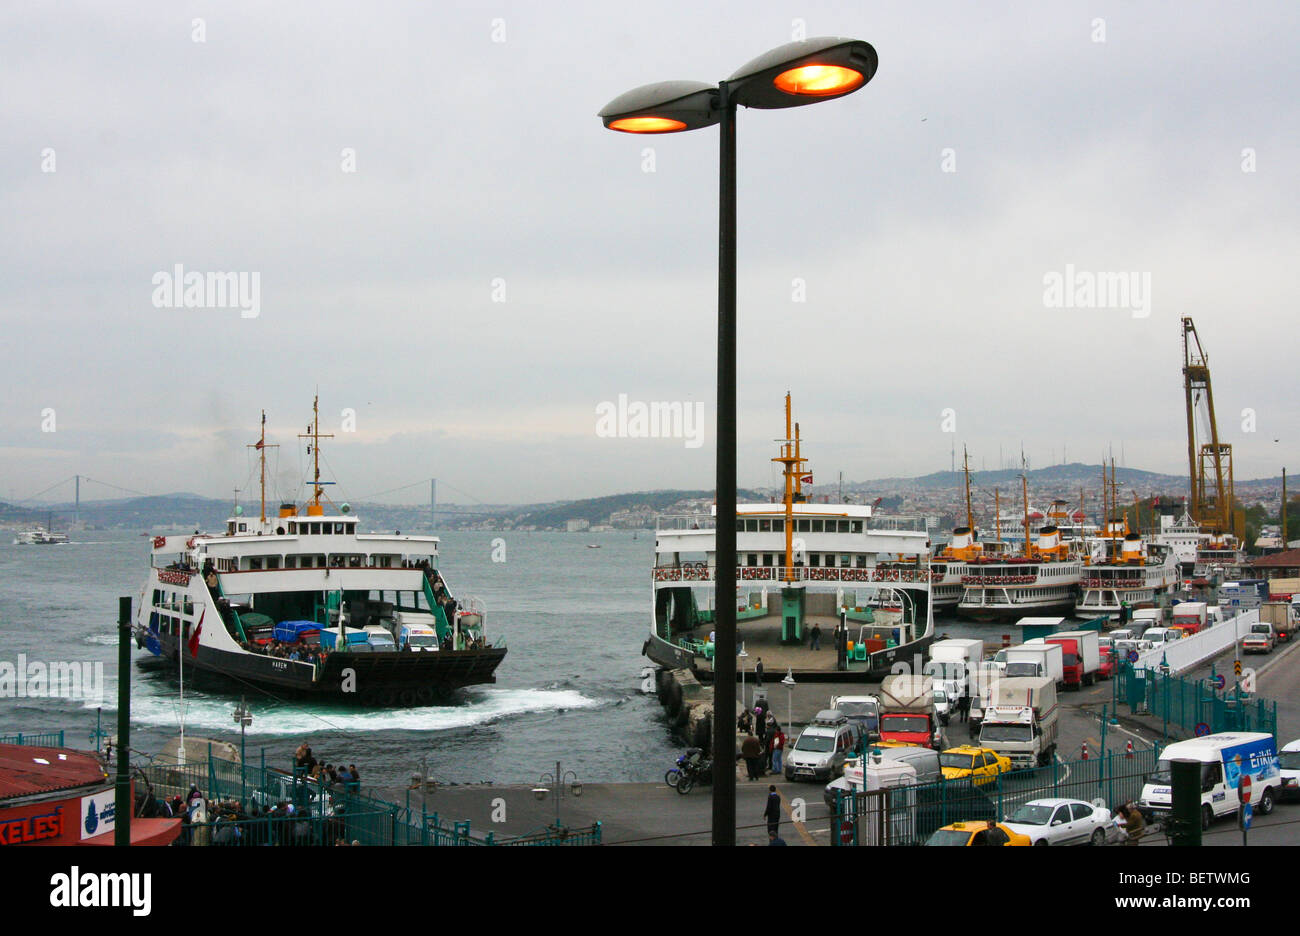 View over the Eminonu pier in Istanbul with car transporting ferries in the dock. - Stock Image